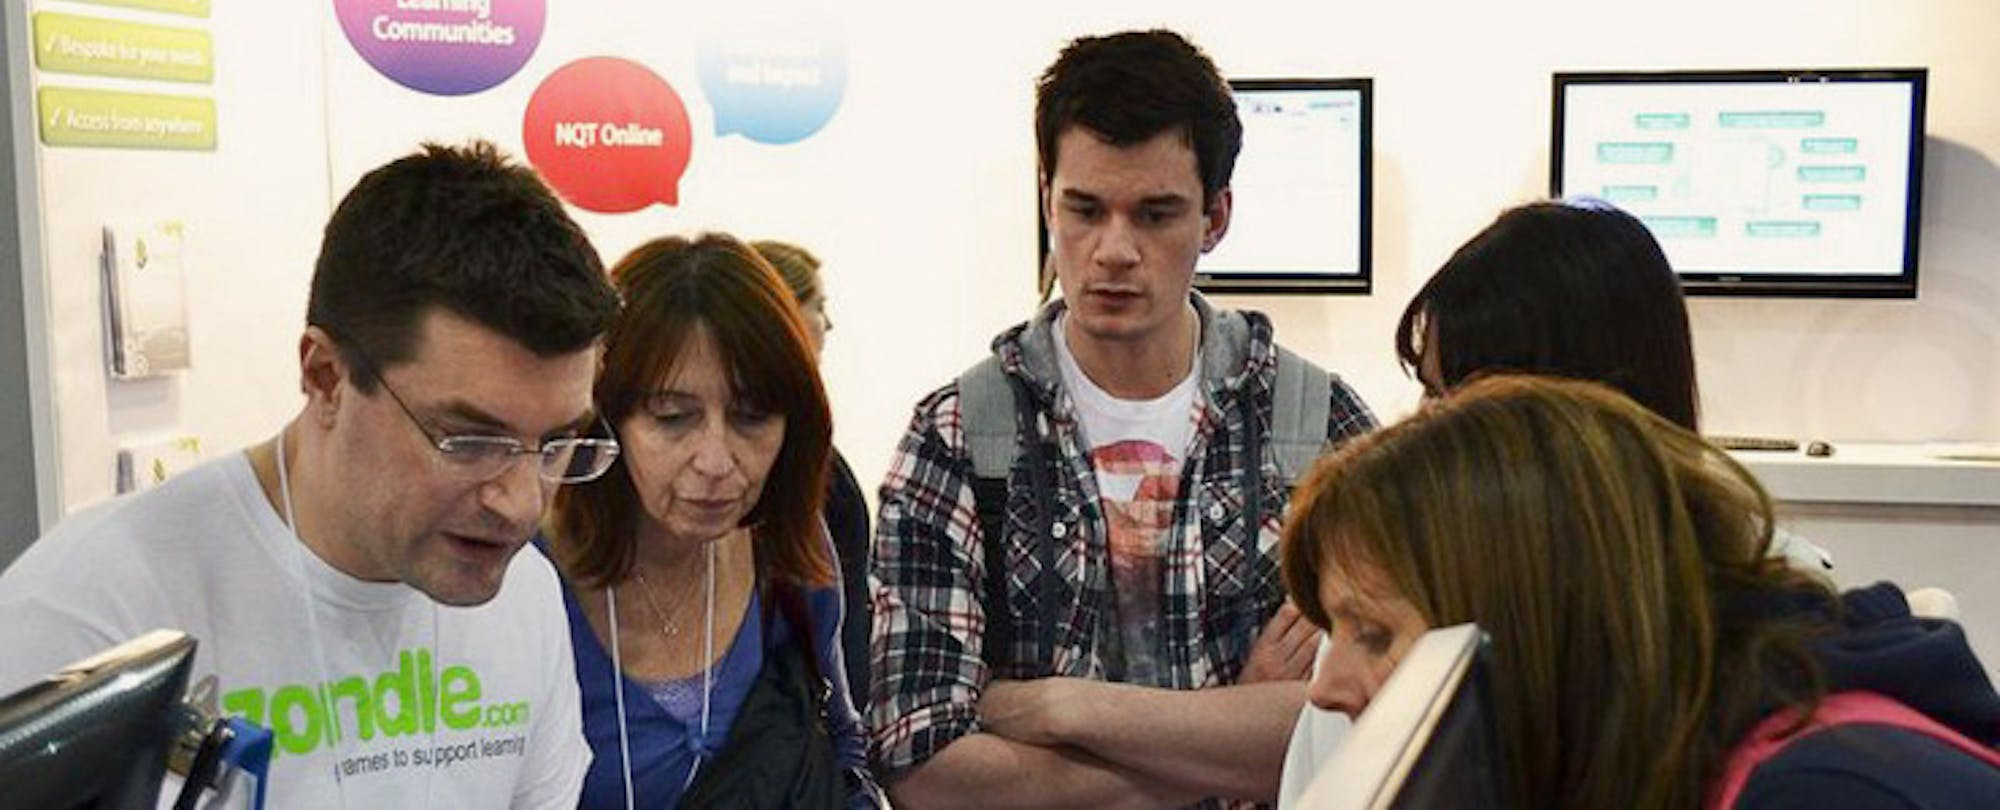 BETT Shows Off UK's Education Technology Finest